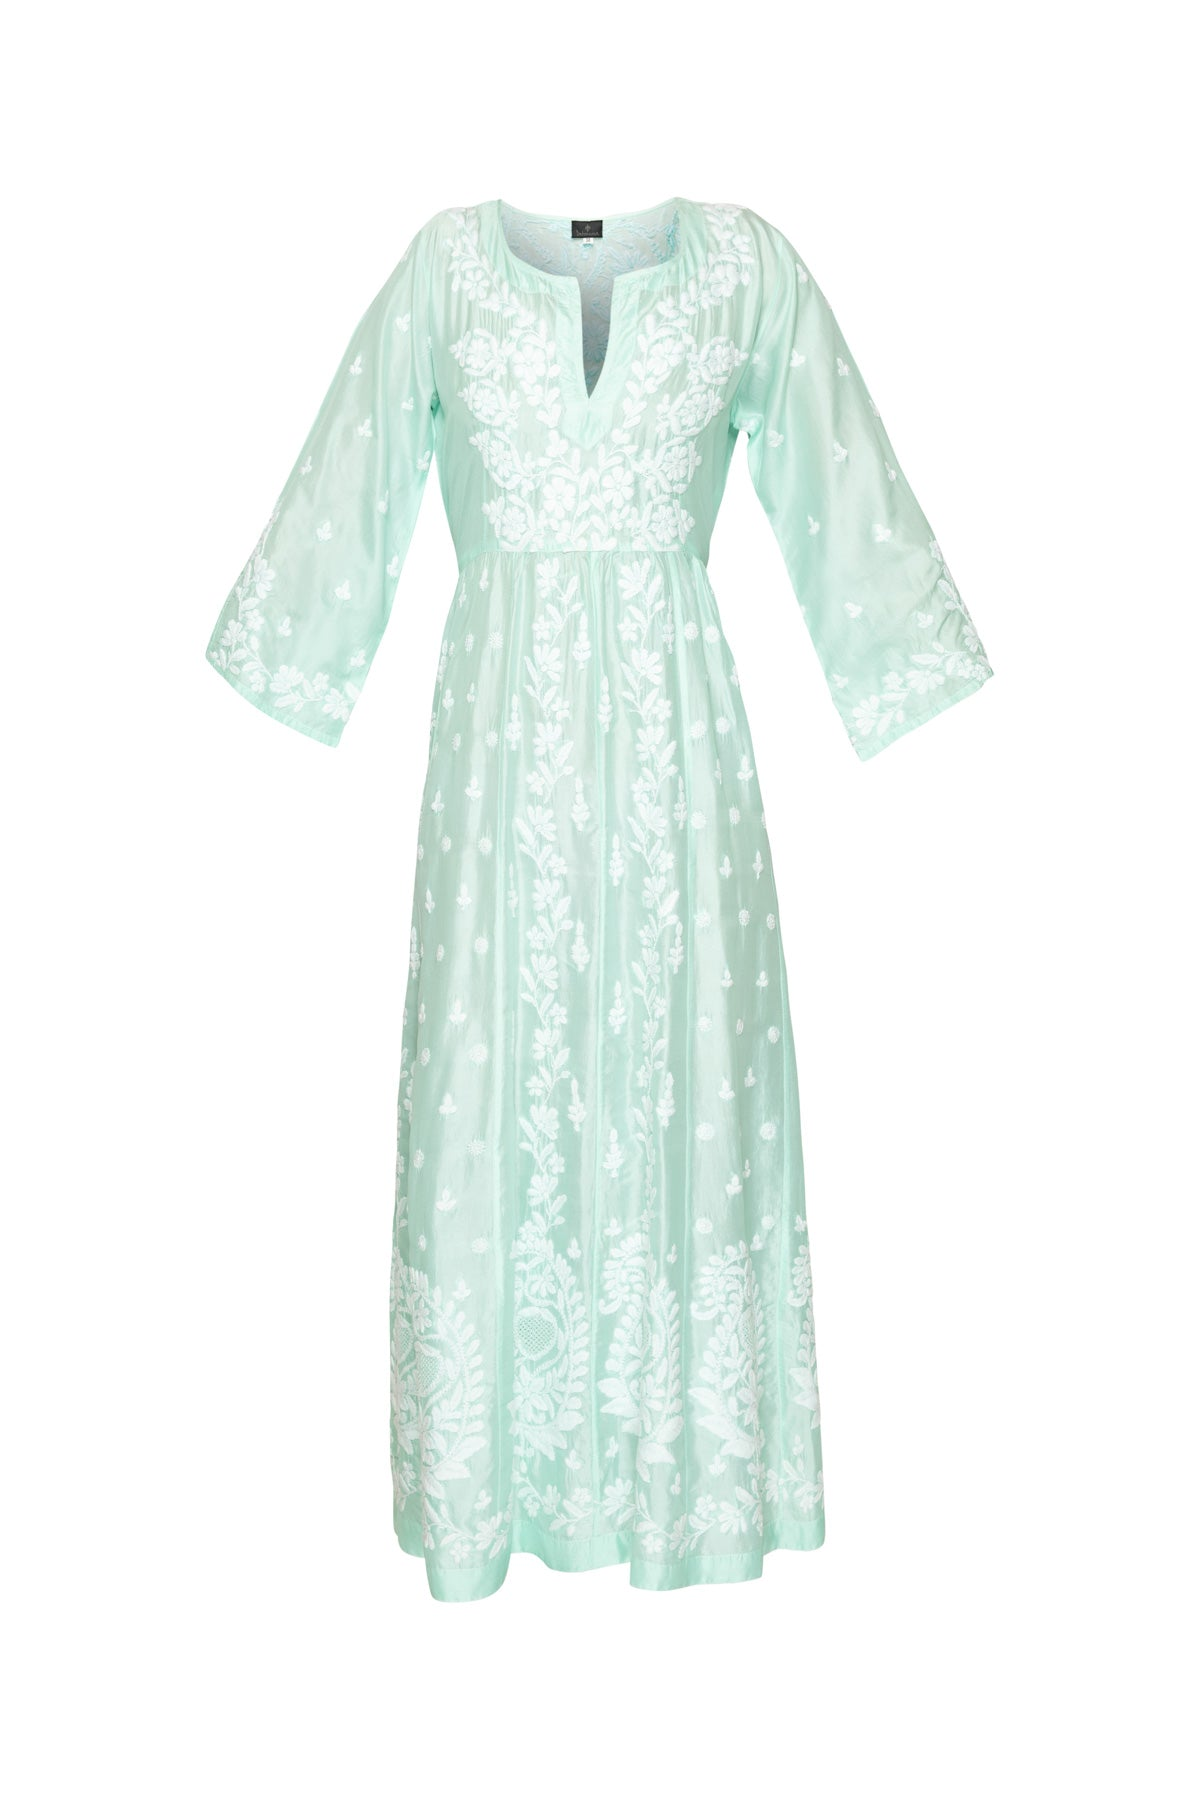 Embroidered Silk Dress With Ties - Light Turquoise